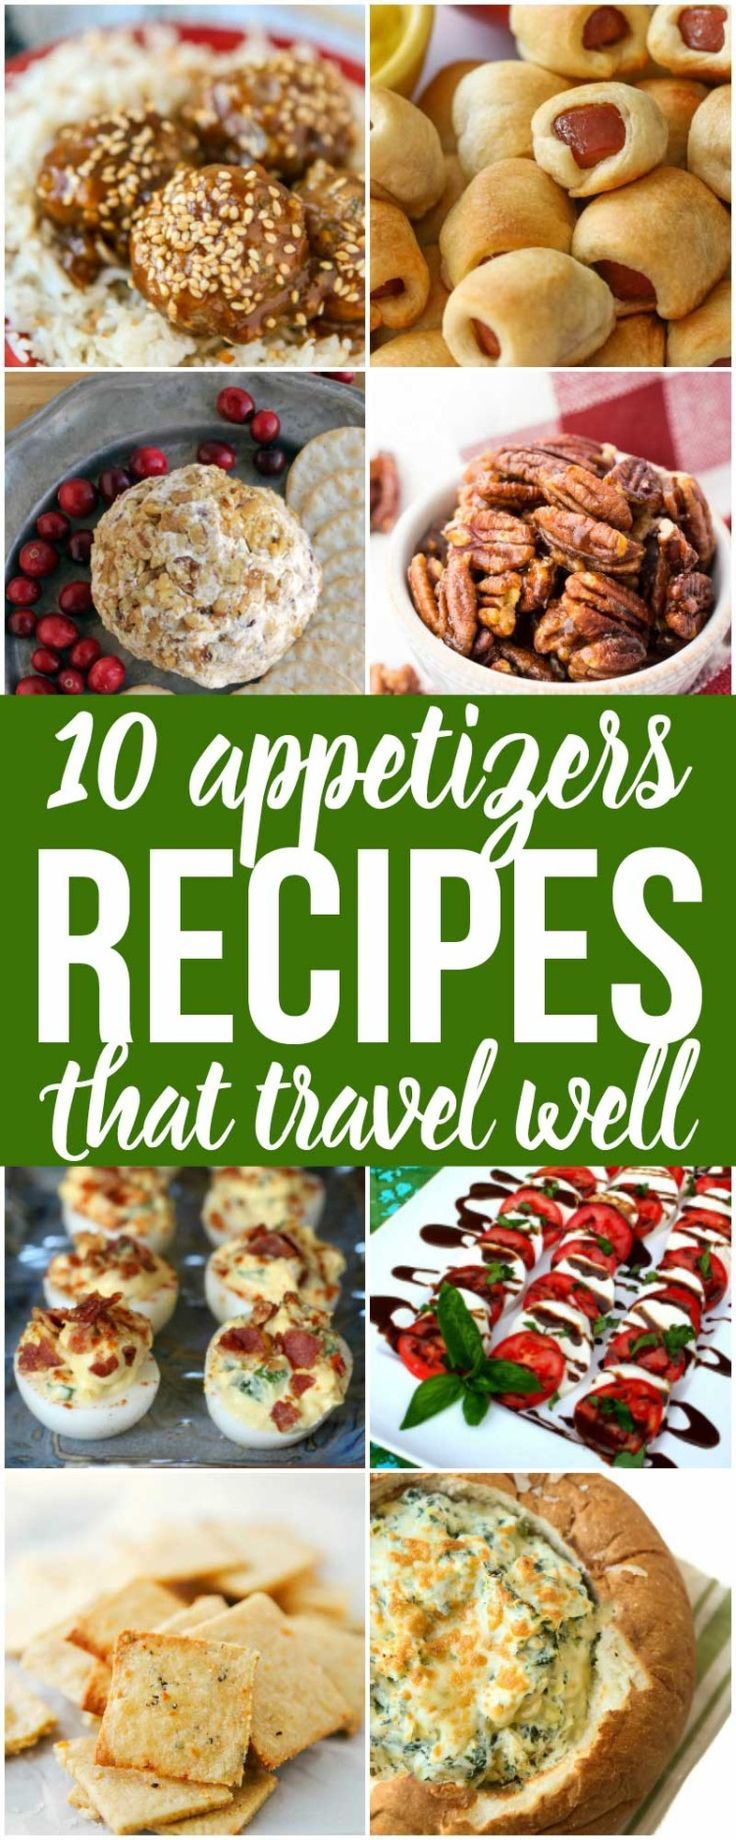 Traveling to a party or to visit family and friends this holiday season? Skip the crockpot in the trunk and go with one of these potluck recipes that travel well instead. With everything from easy breakfast recipes to make ahead desserts, these dishes that travel well has something for everyone and every occasion.